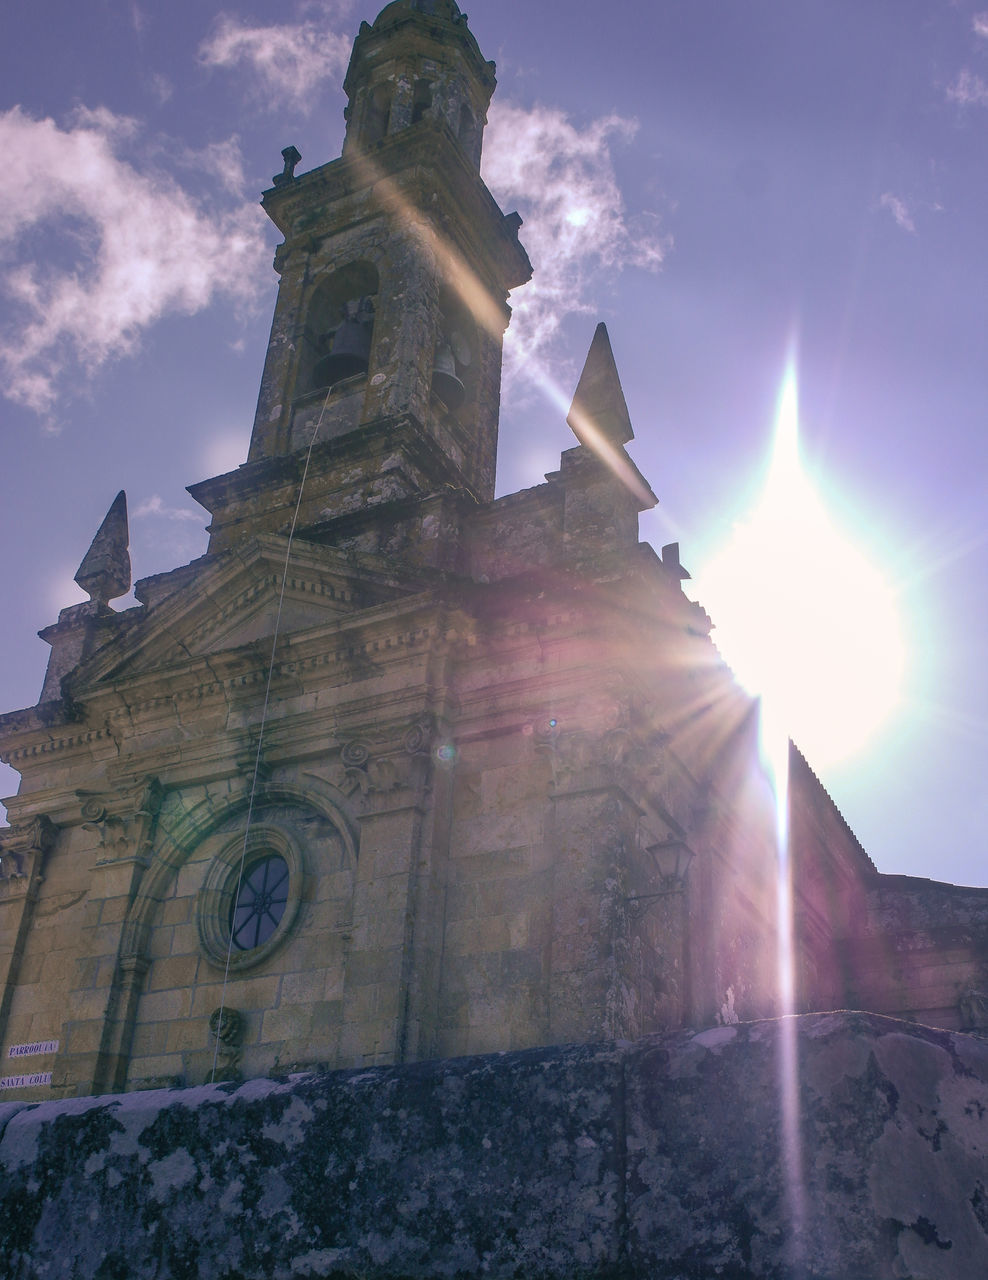 religion, spirituality, lens flare, place of worship, architecture, low angle view, sunbeam, sunlight, built structure, sky, no people, history, building exterior, day, outdoors, bell tower, nature